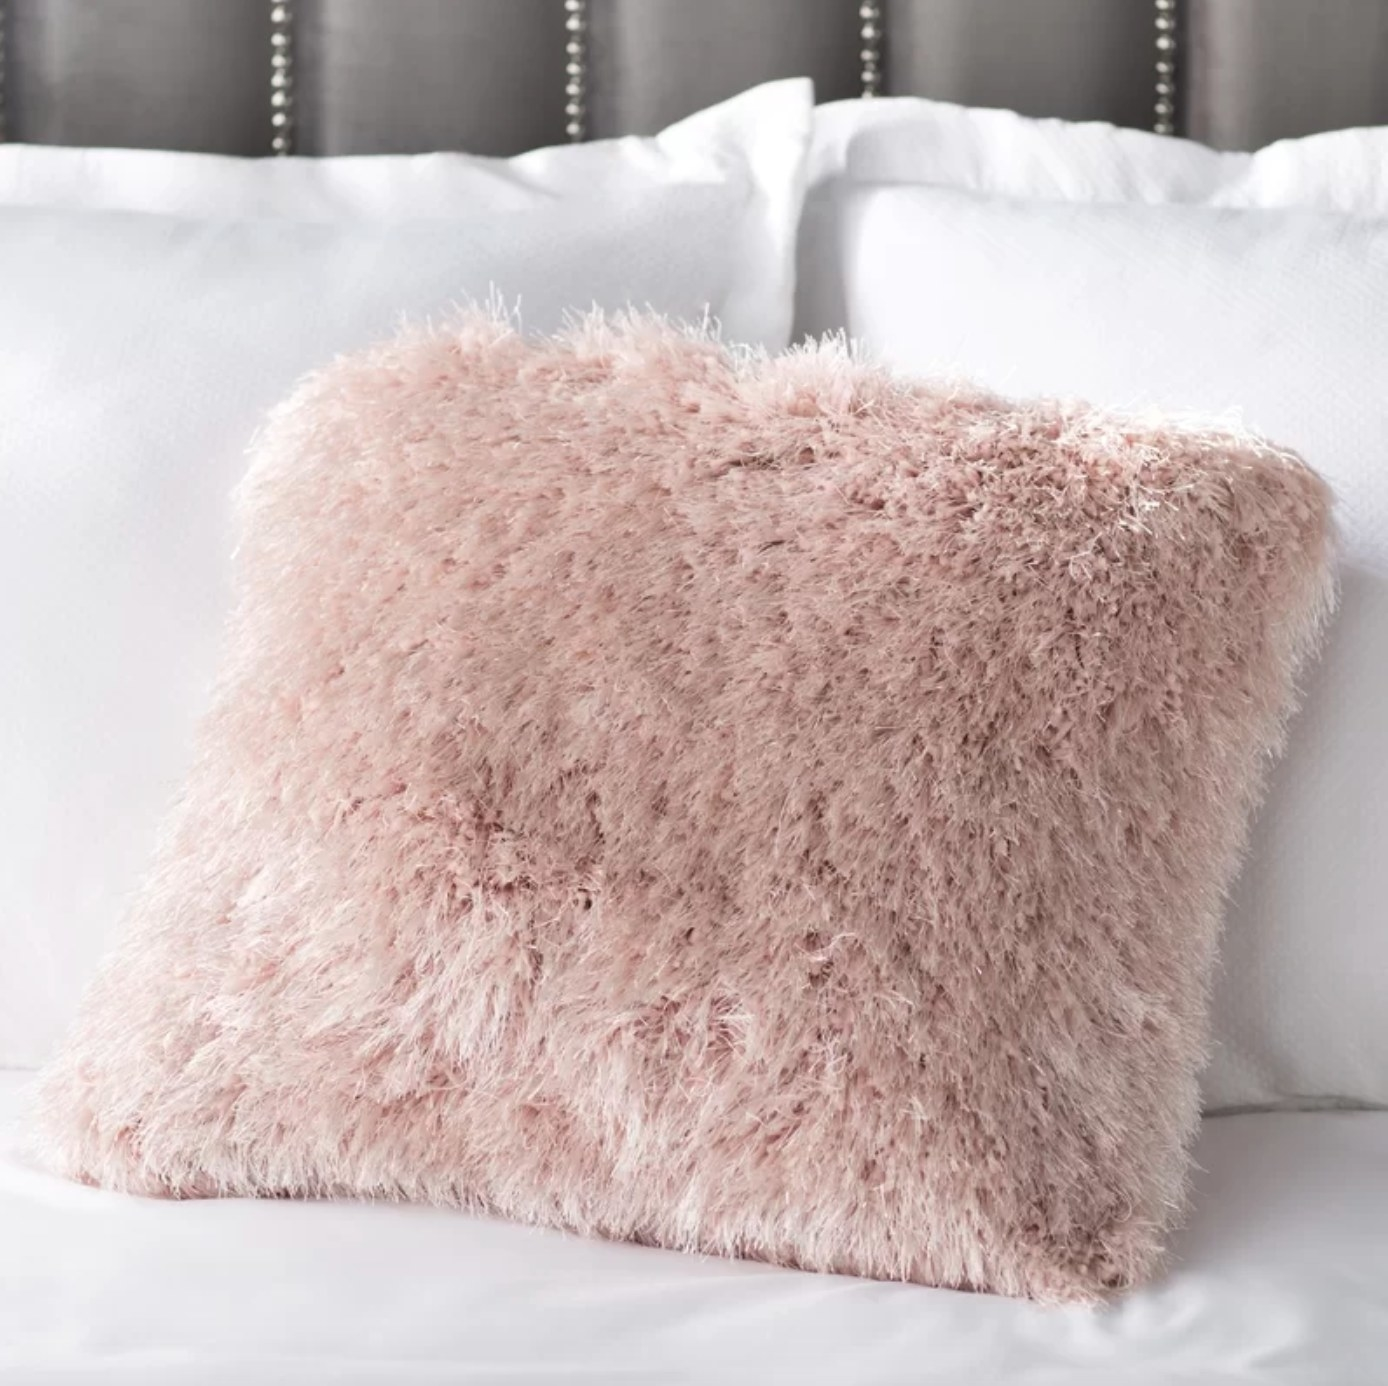 The shag square pillow in rose